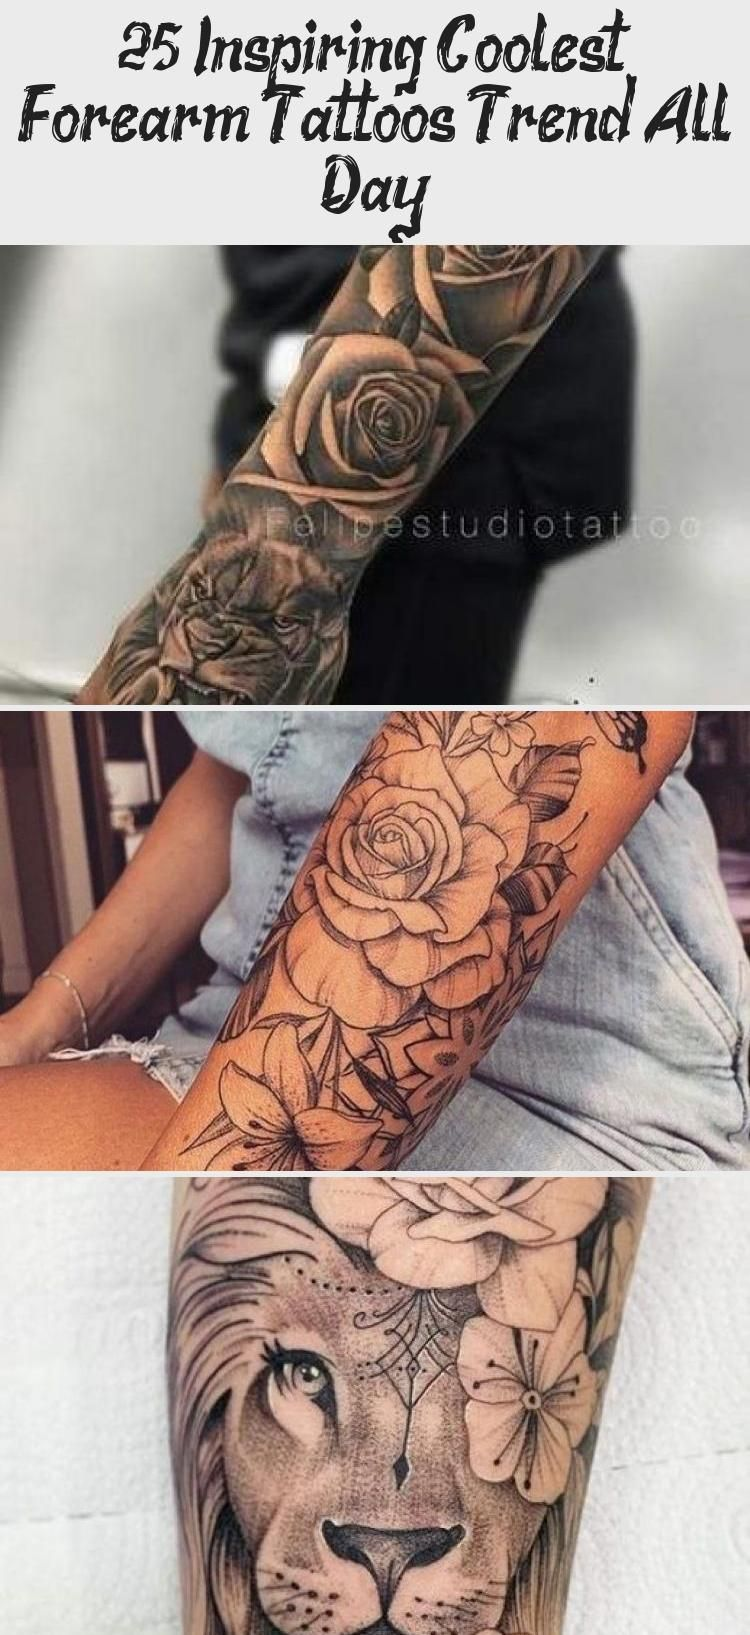 25 Inspiring Coolest Forearm Tattoos Trend All Day - Tattoos and Body Art -  25 Inspiring Coolest Forearm Tattoos Trend All Day #handtattoosFlower #handtattoosAesthetic #handta - #art #beetatto #body #coolest #Day #dinnerrecipes #foottatto #forearm #forearmtatto #inspiring #sistertatto #skulltatto #tattofamily #tattovrouw #tattoos #trend